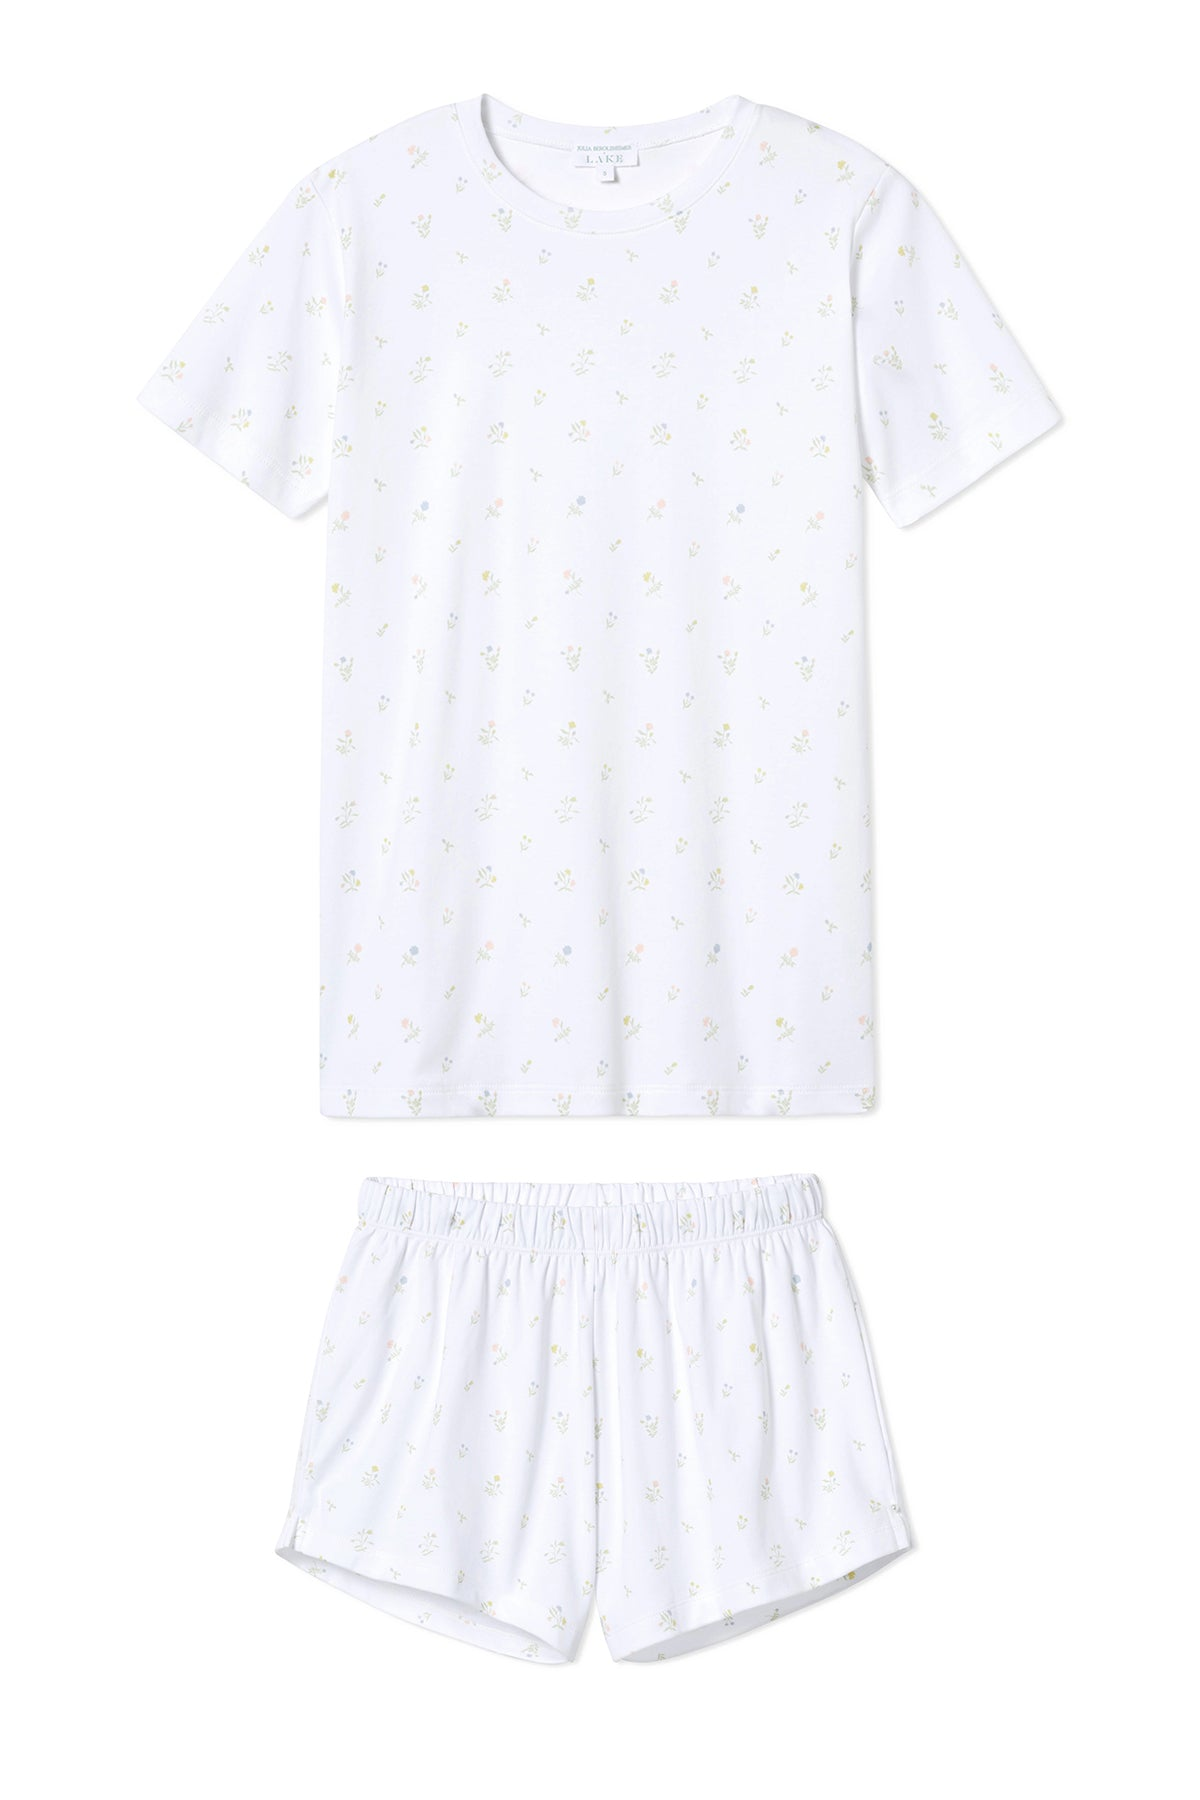 JB x LAKE Pima Weekend Shorts Set in Garden Bloom